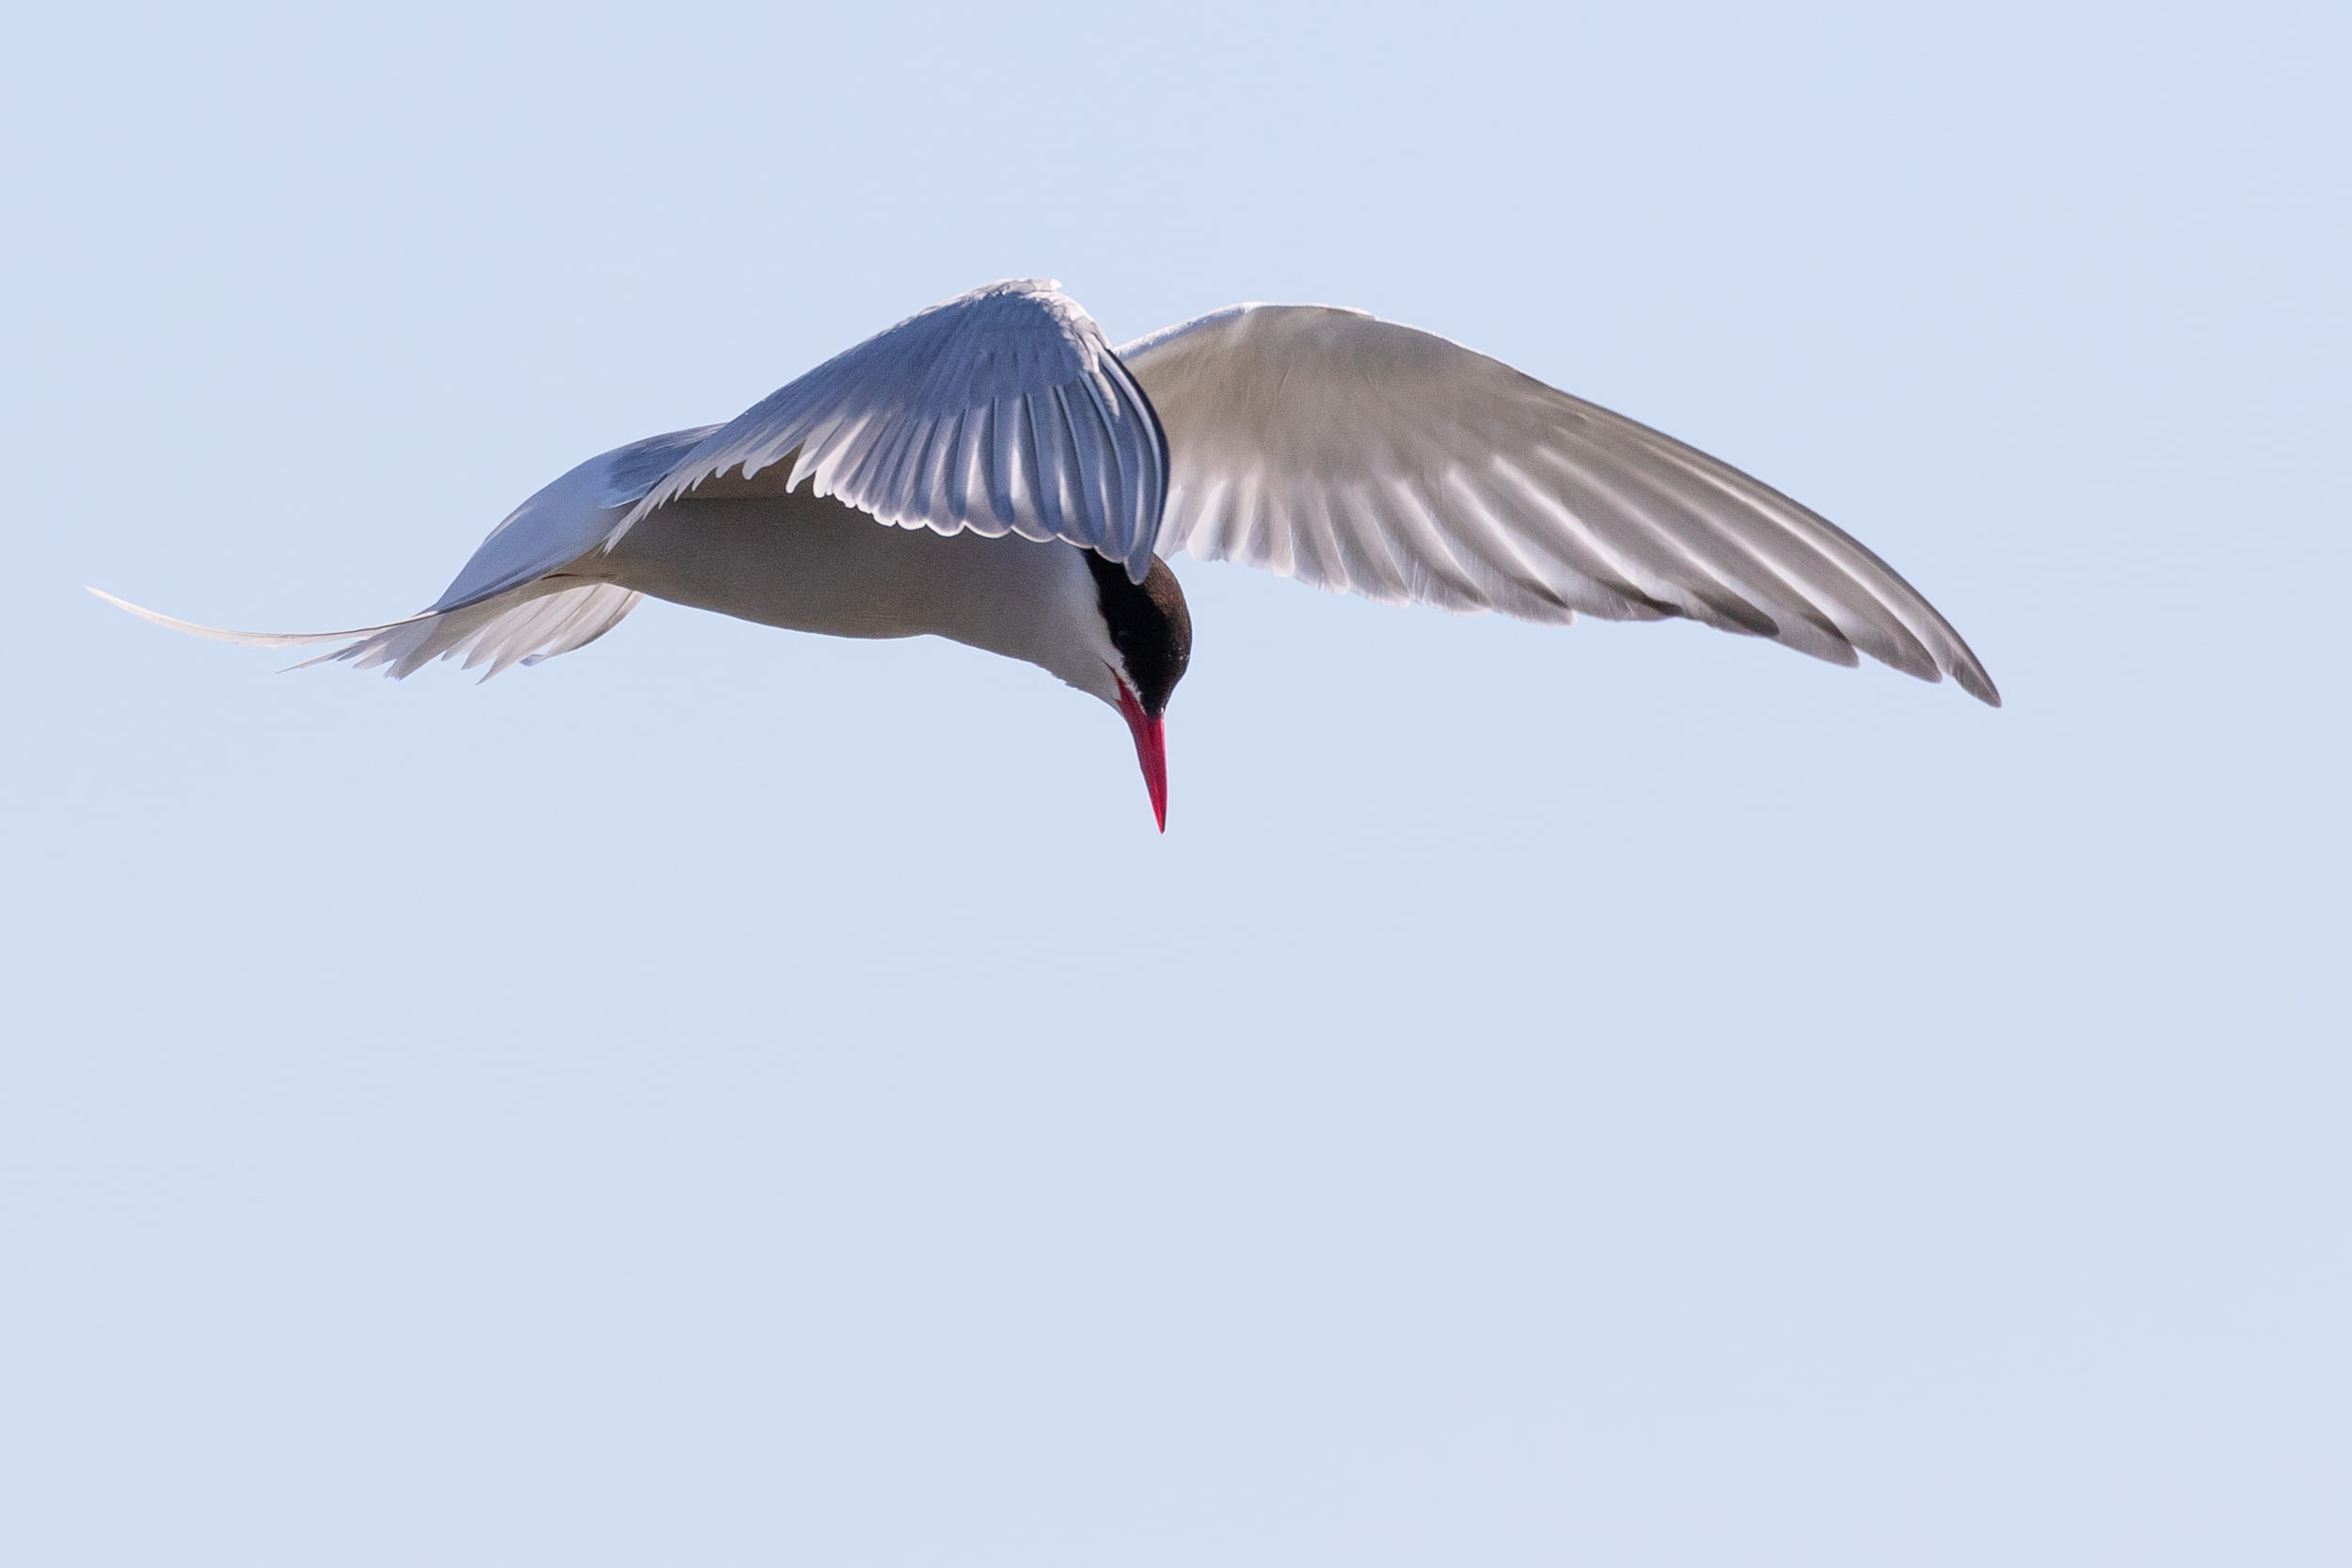 Arctic Tern, same bird as previous.